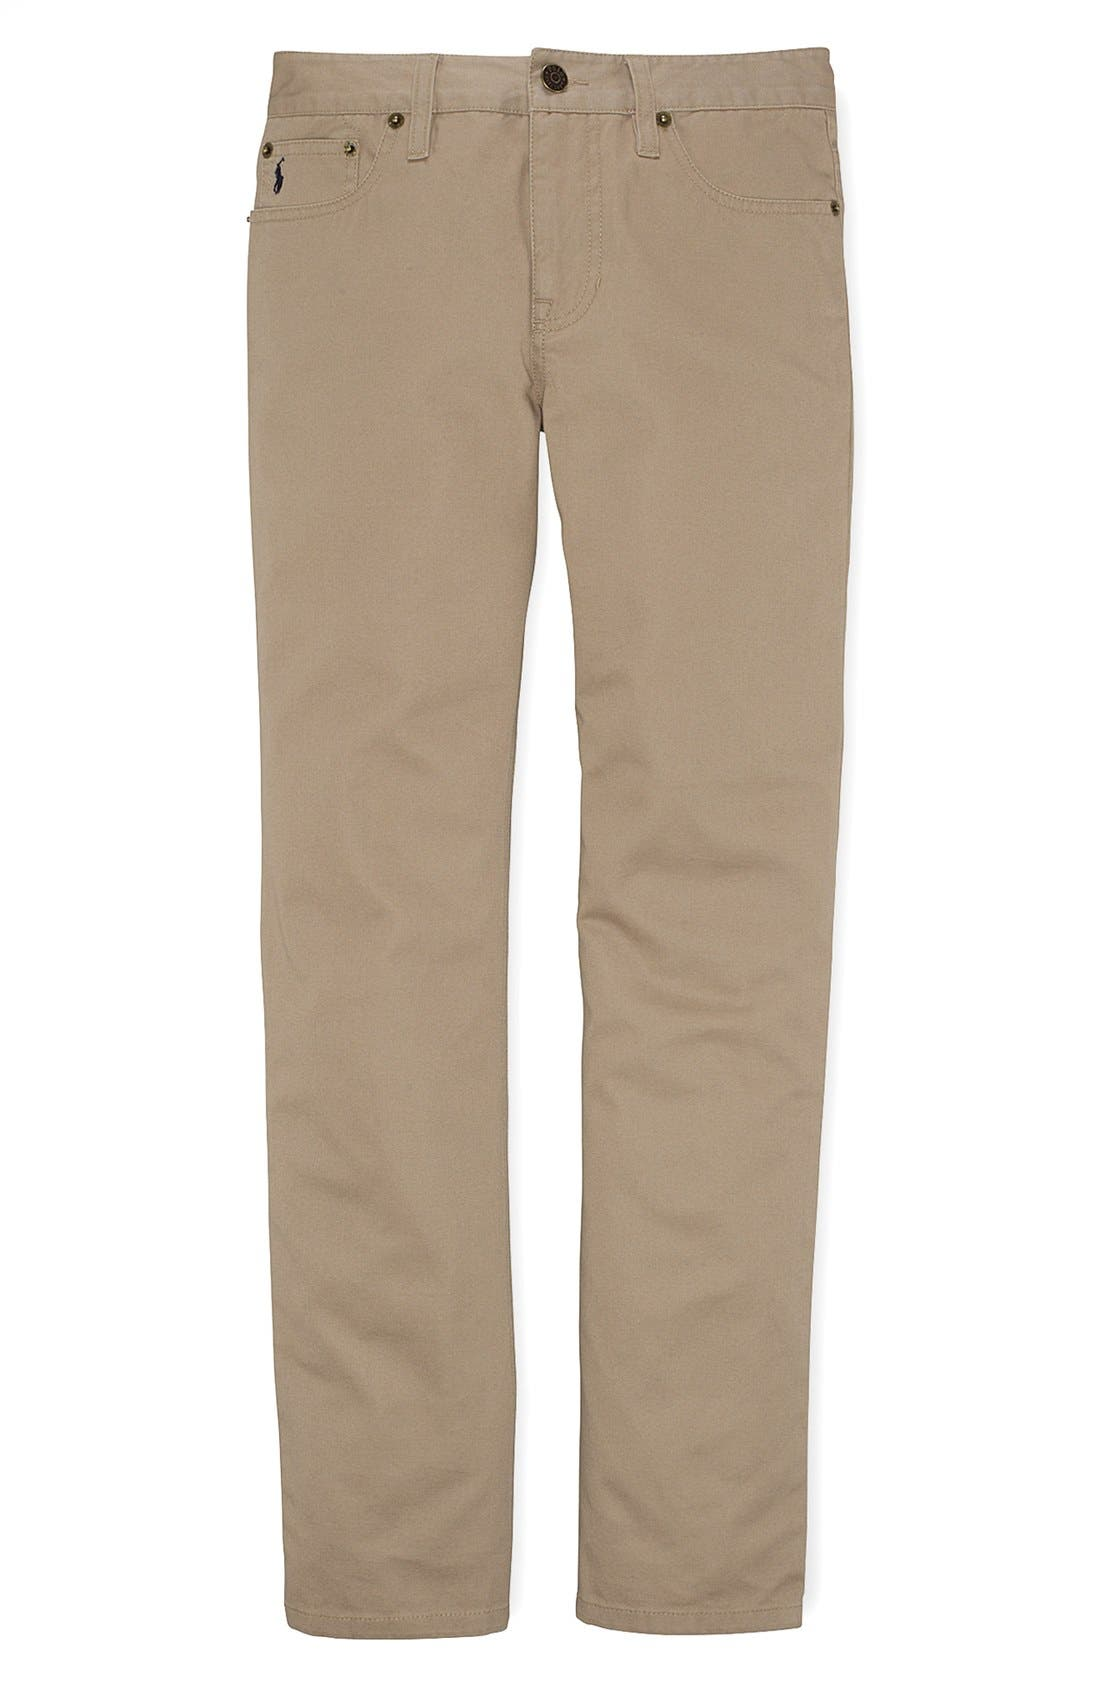 Alternate Image 1 Selected - Ralph Lauren Chinos (Big Boys)